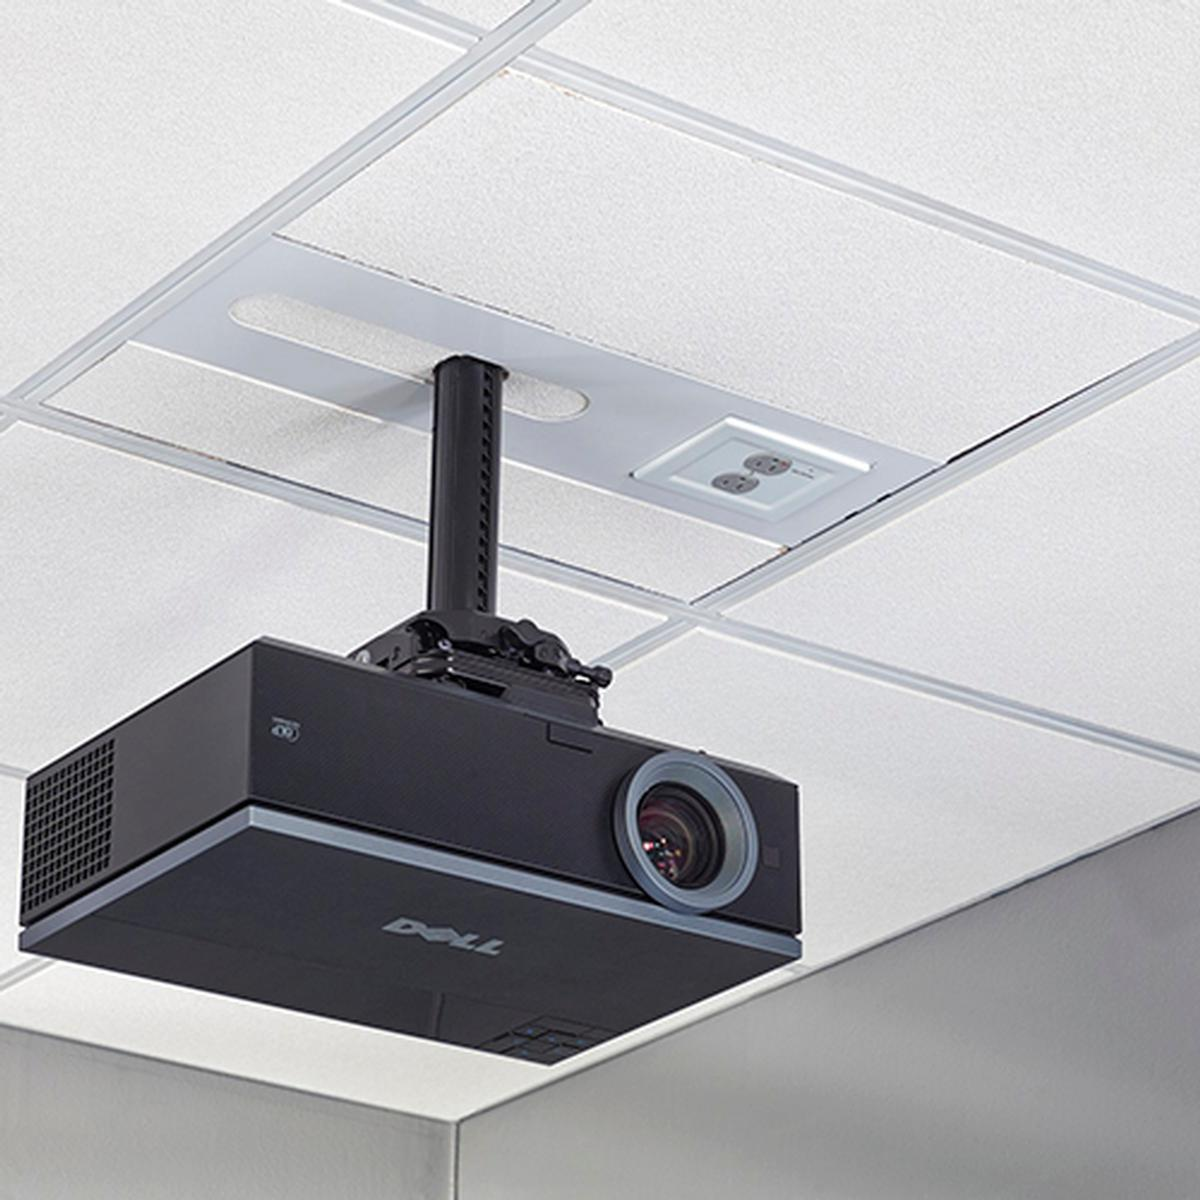 Chief Sysaub Suspended Ceiling Projector System Black